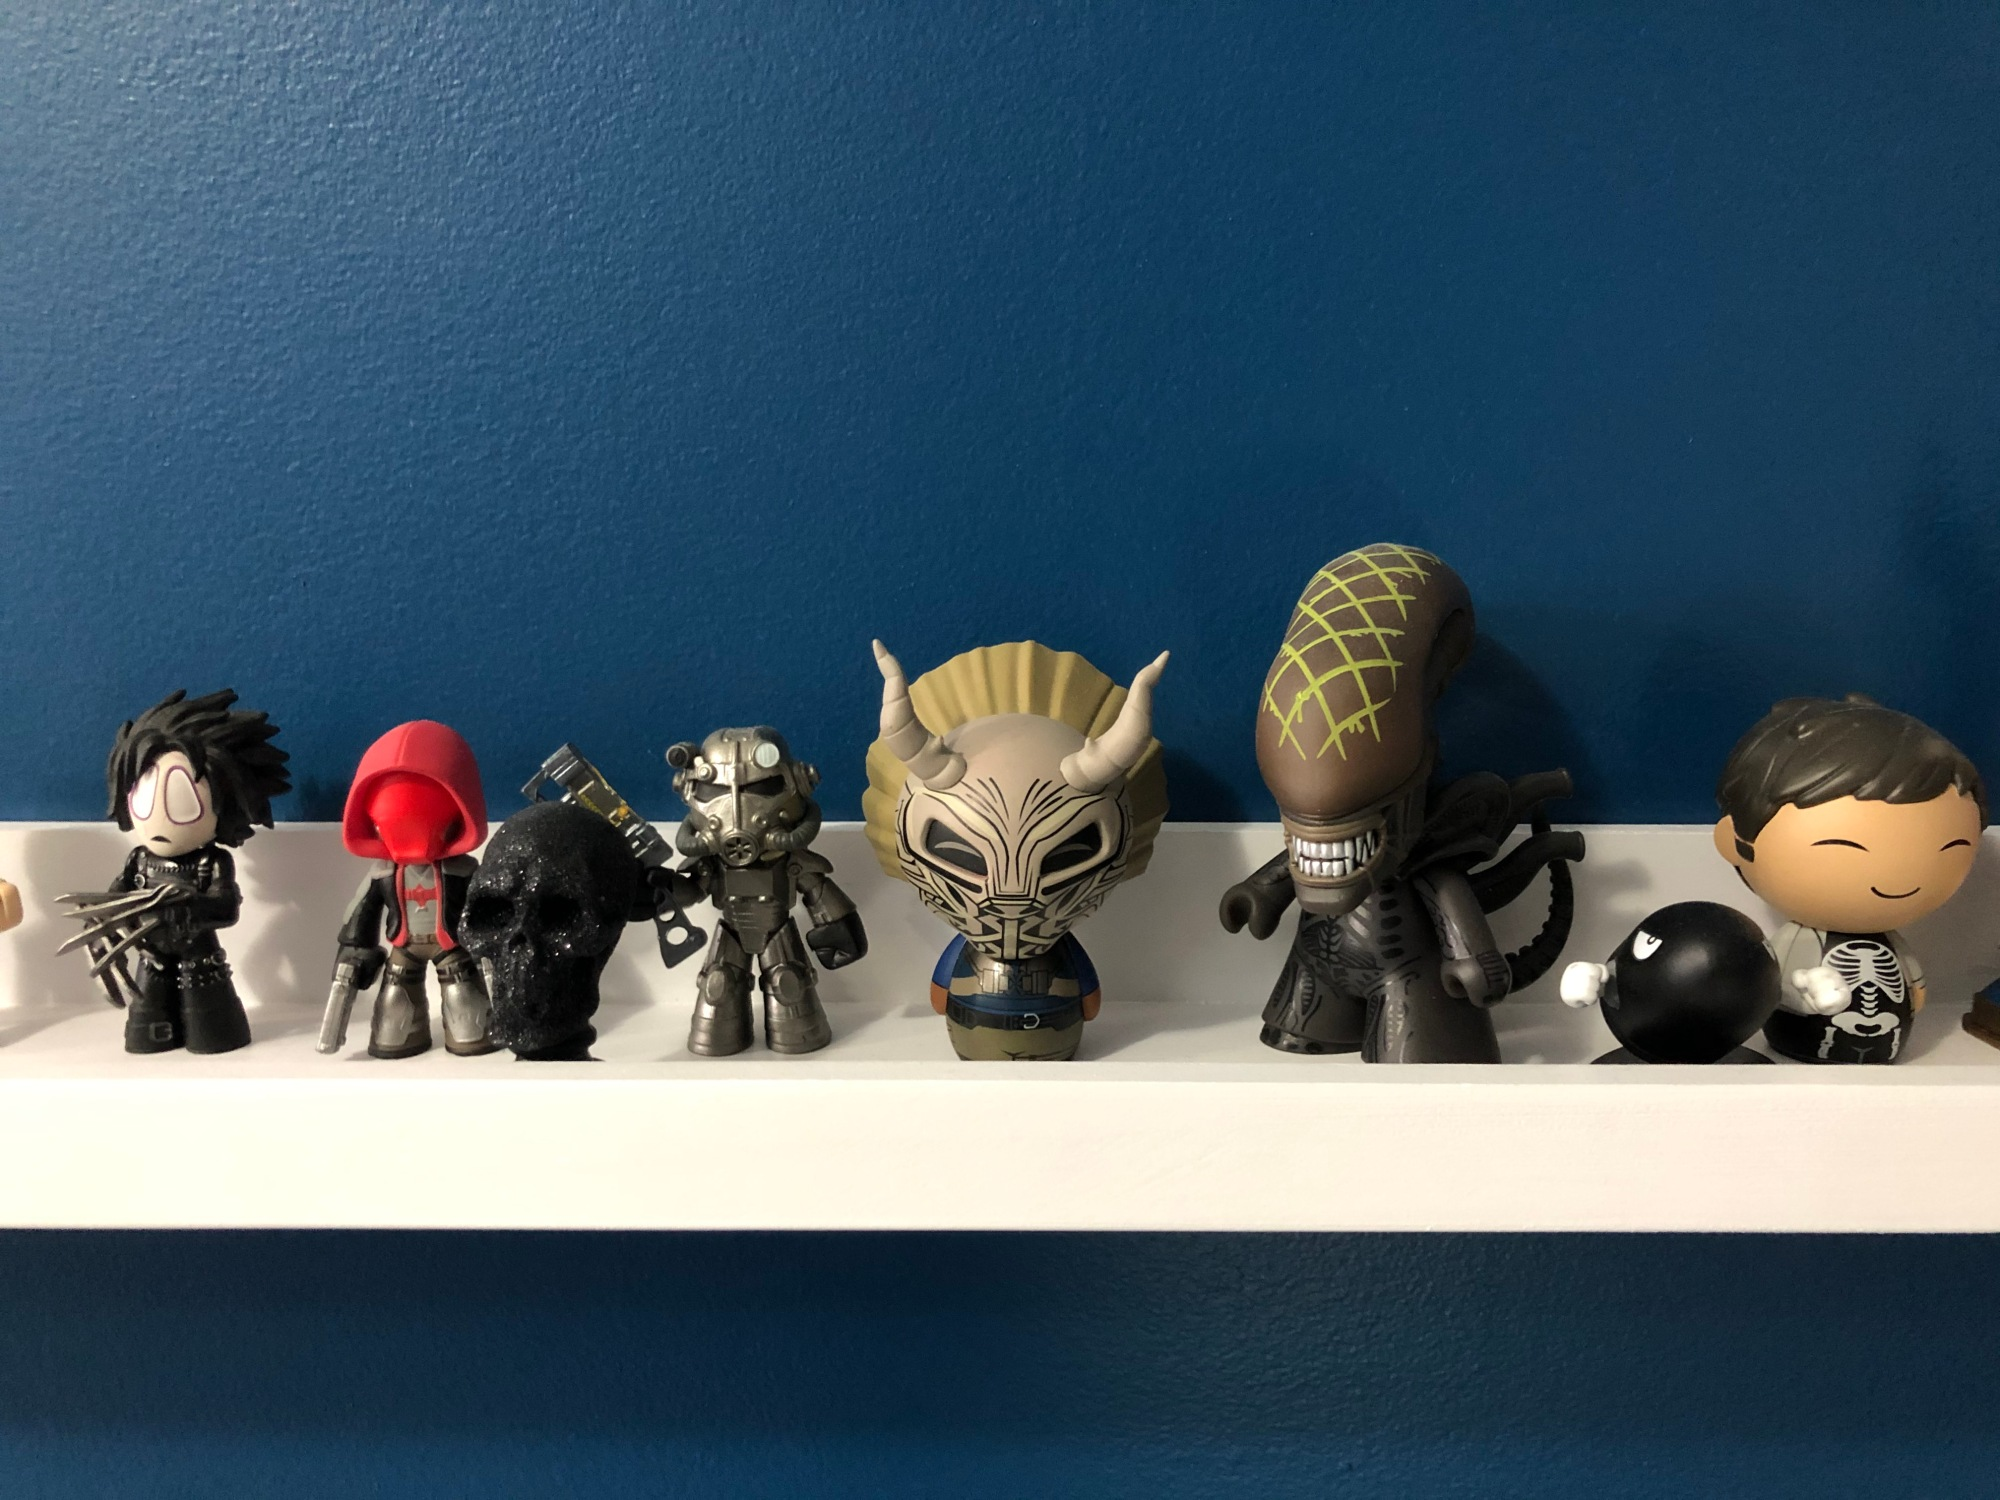 A line of pop culture figurines.